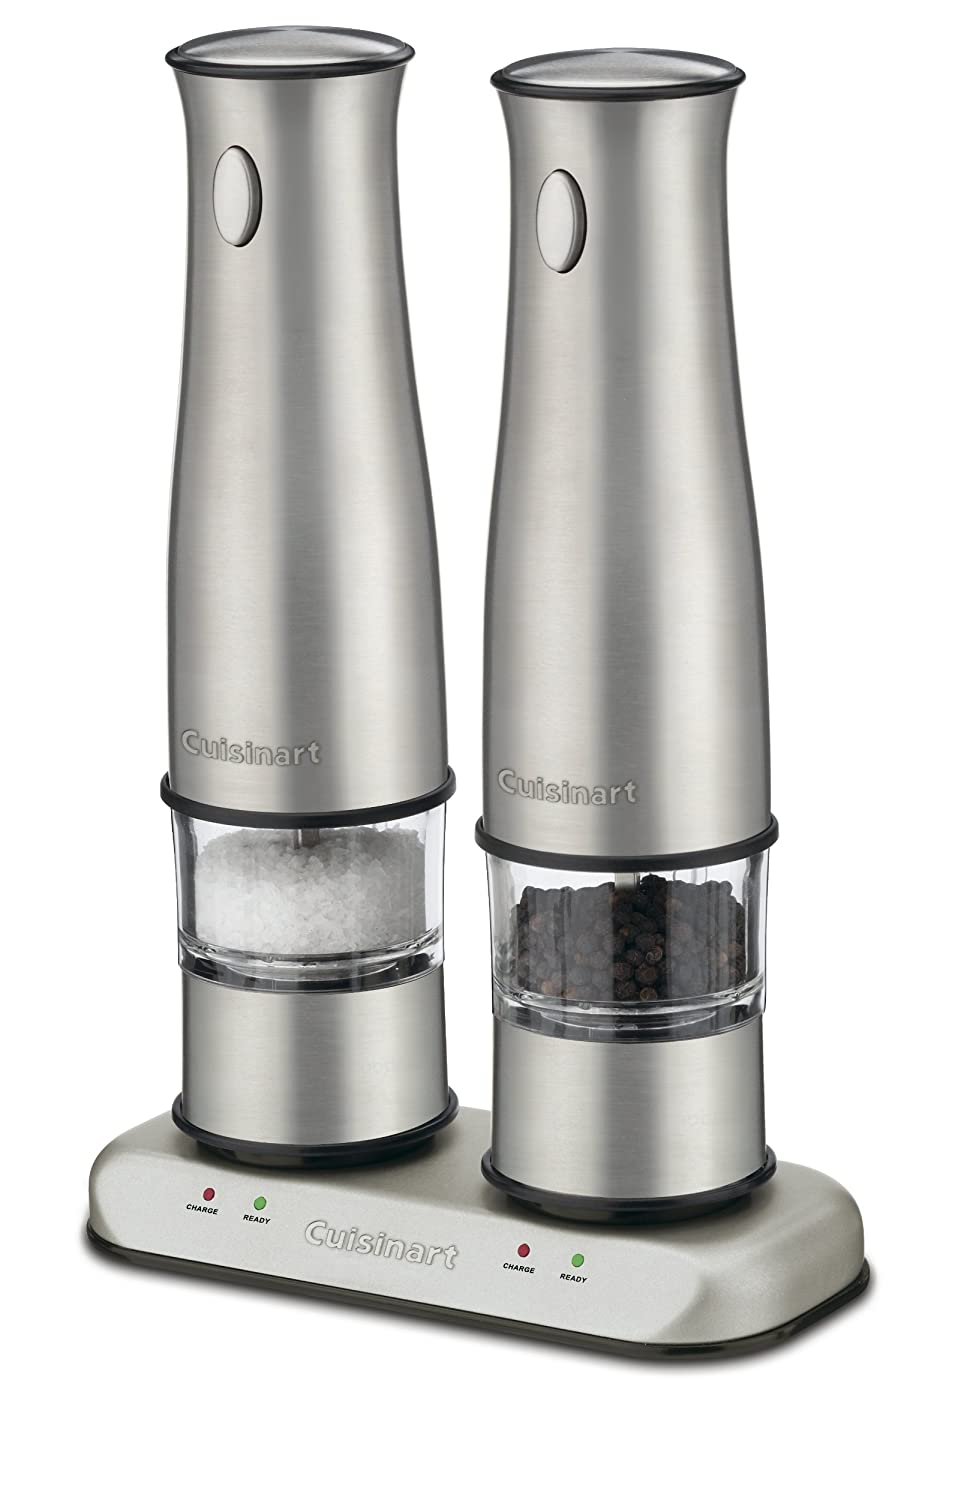 salt and pepper shaker cabinet amazoncom cuisinart sp2 stainless steel rechargeable salt and pepper mills electric and grinder set kitchen dining